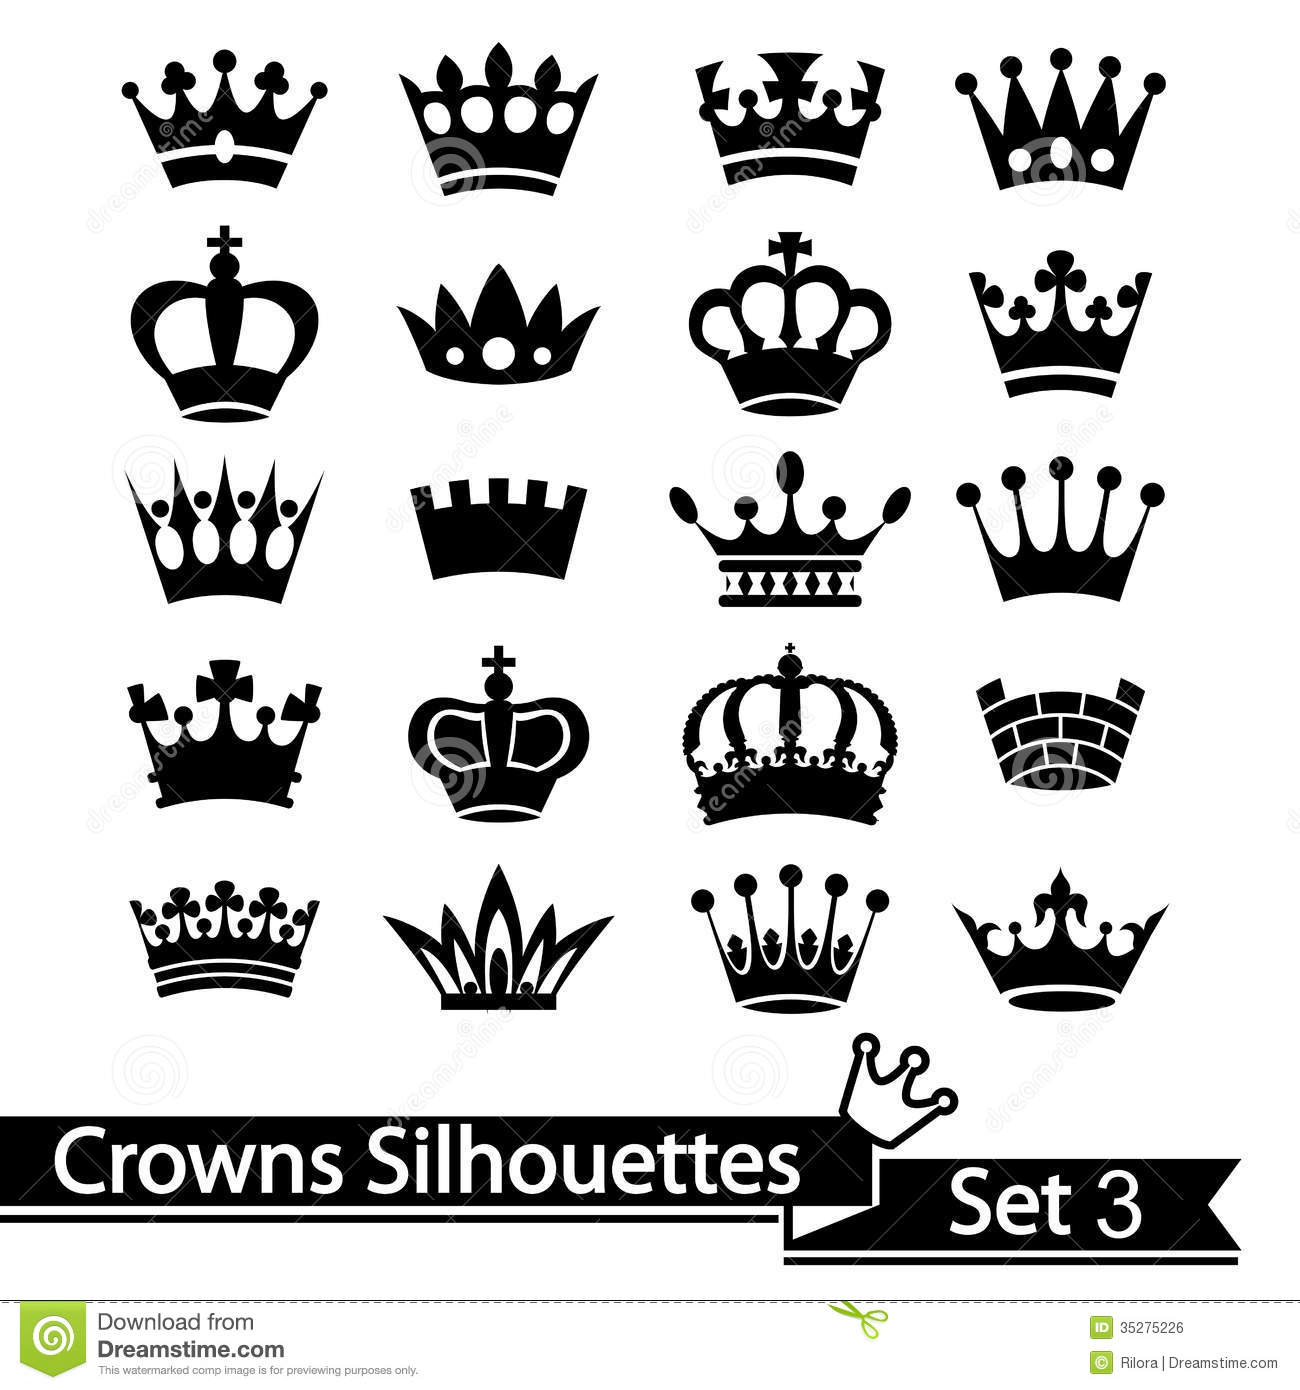 free vector clipart crown - photo #24